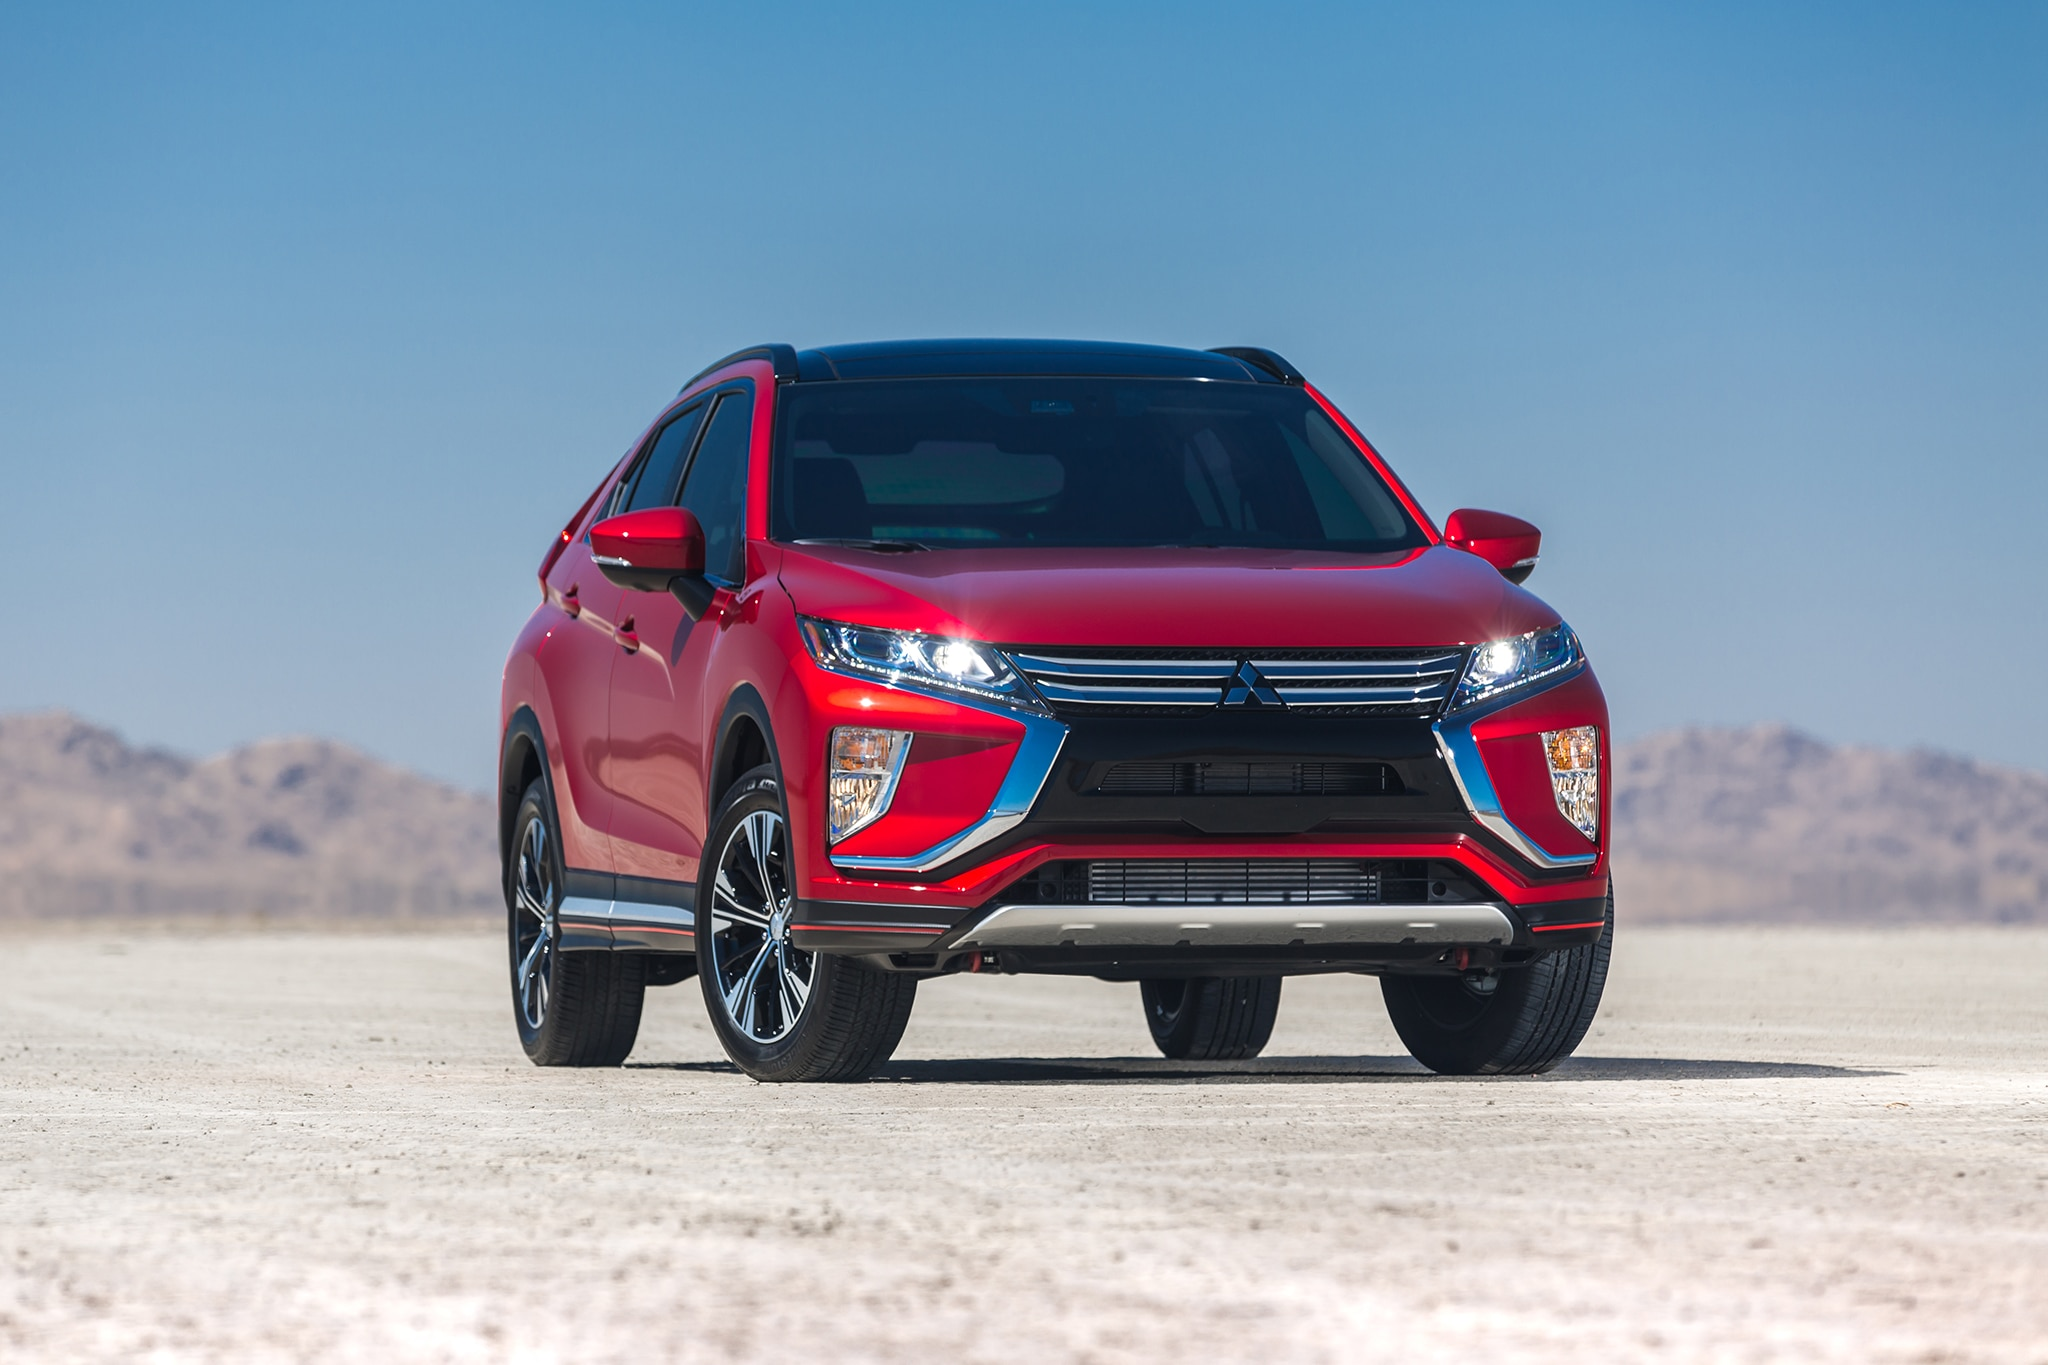 mitsubishis another trader s news mitsubishi xr first compact suv concept of motor phev evolution